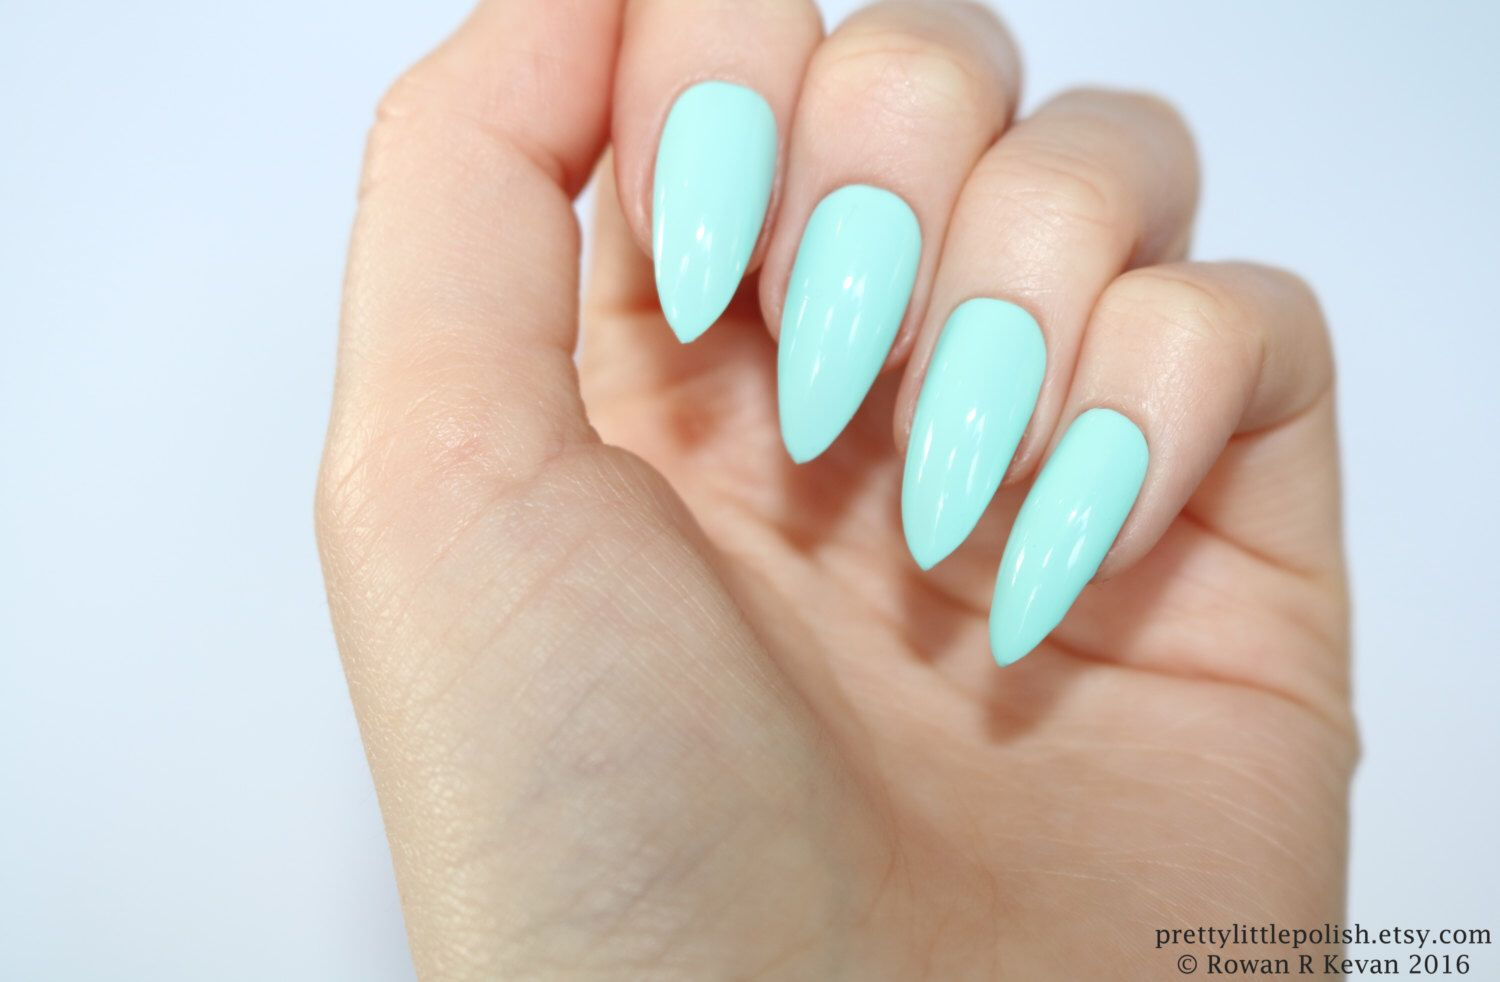 Stiletto nails, Mint stiletto nails, Fake nails, Press on nails ...